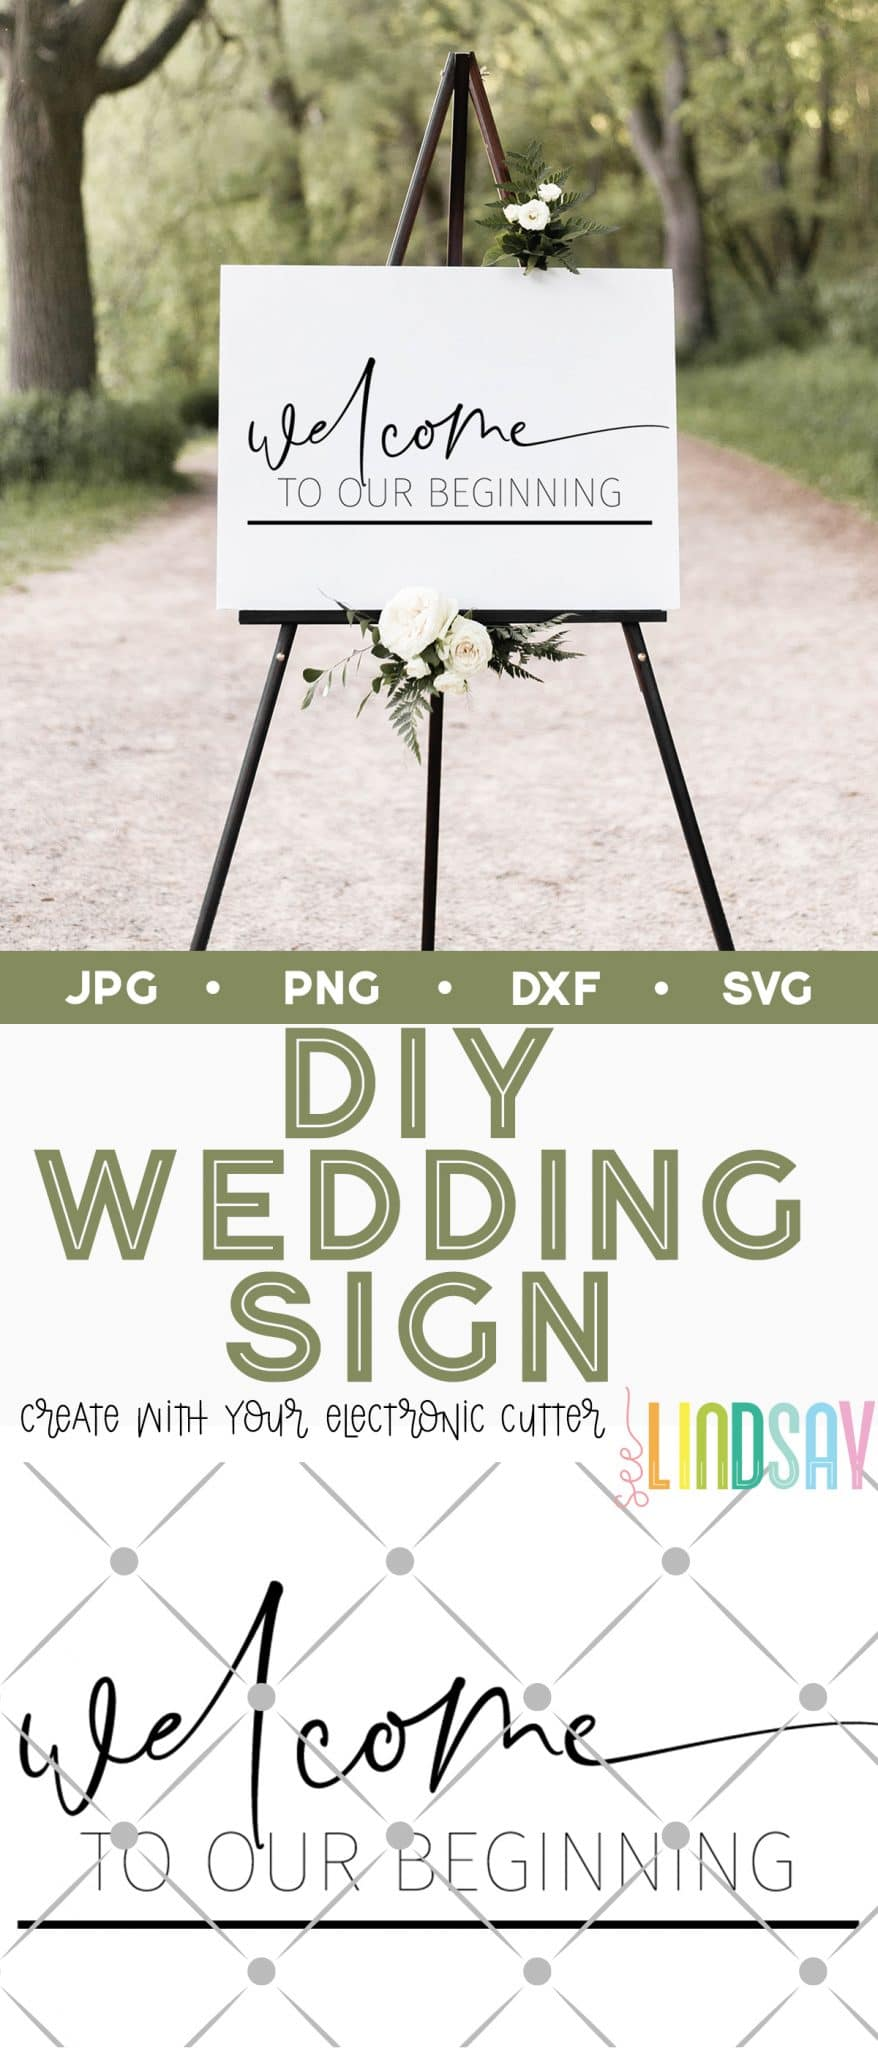 16 Free Wedding Svg Files Diy Wooden Wedding Sign Seelindsay